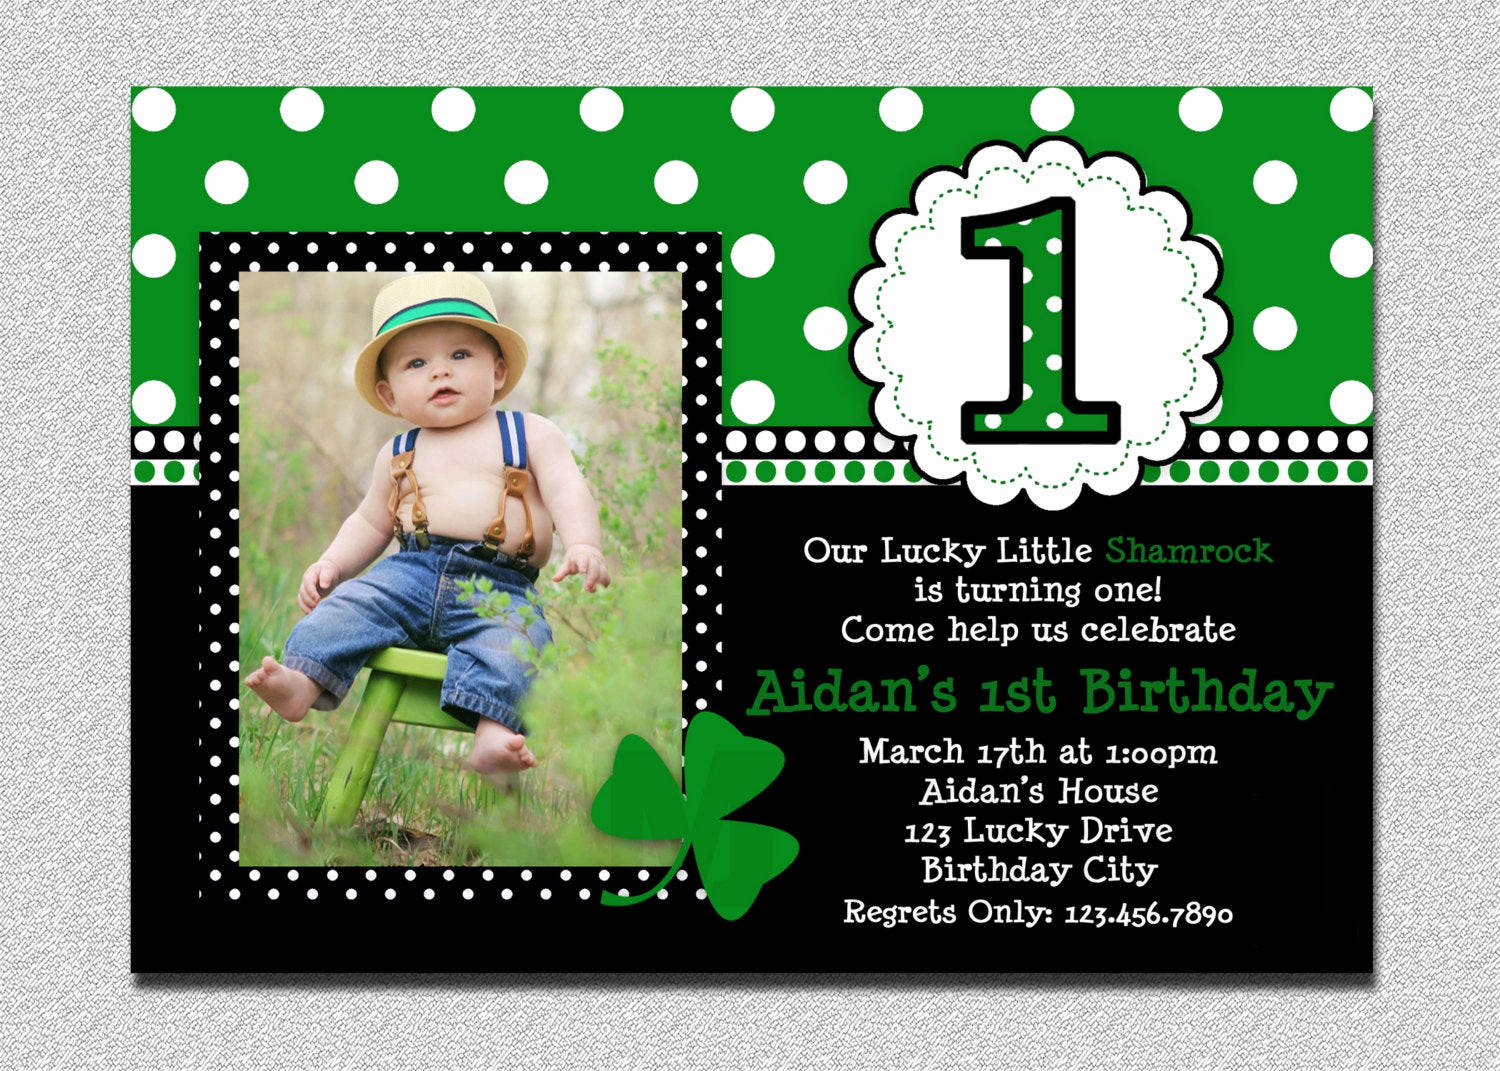 St Patrick Day Invitation New St Patricks Day Birthday Invitation 1st Birthday St Patricks